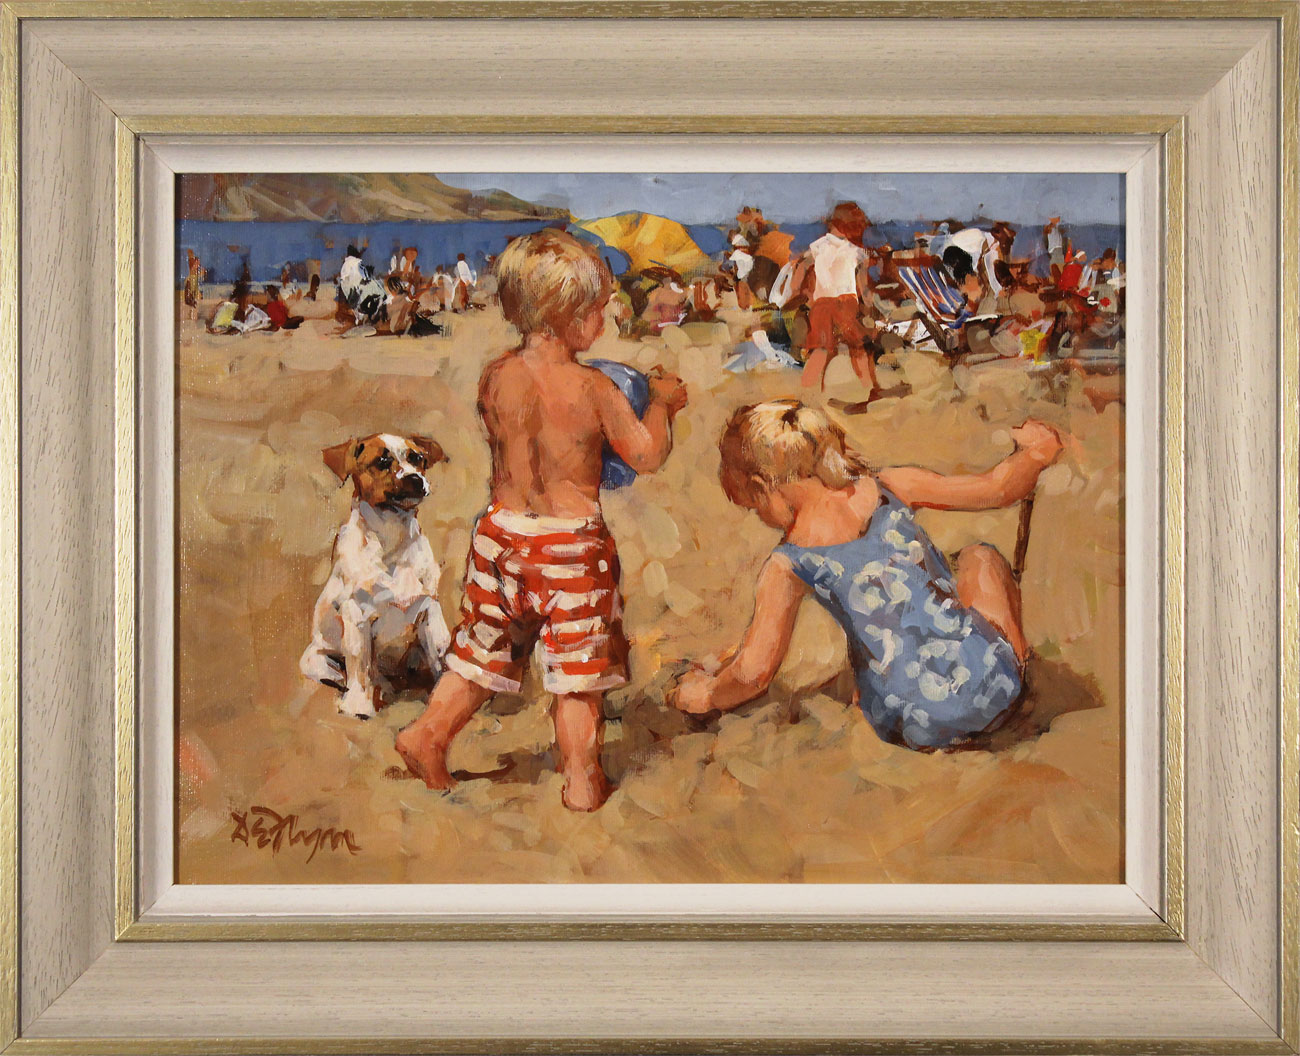 Dianne Flynn, Original acrylic painting on board, The Sands at Lyme Click to enlarge